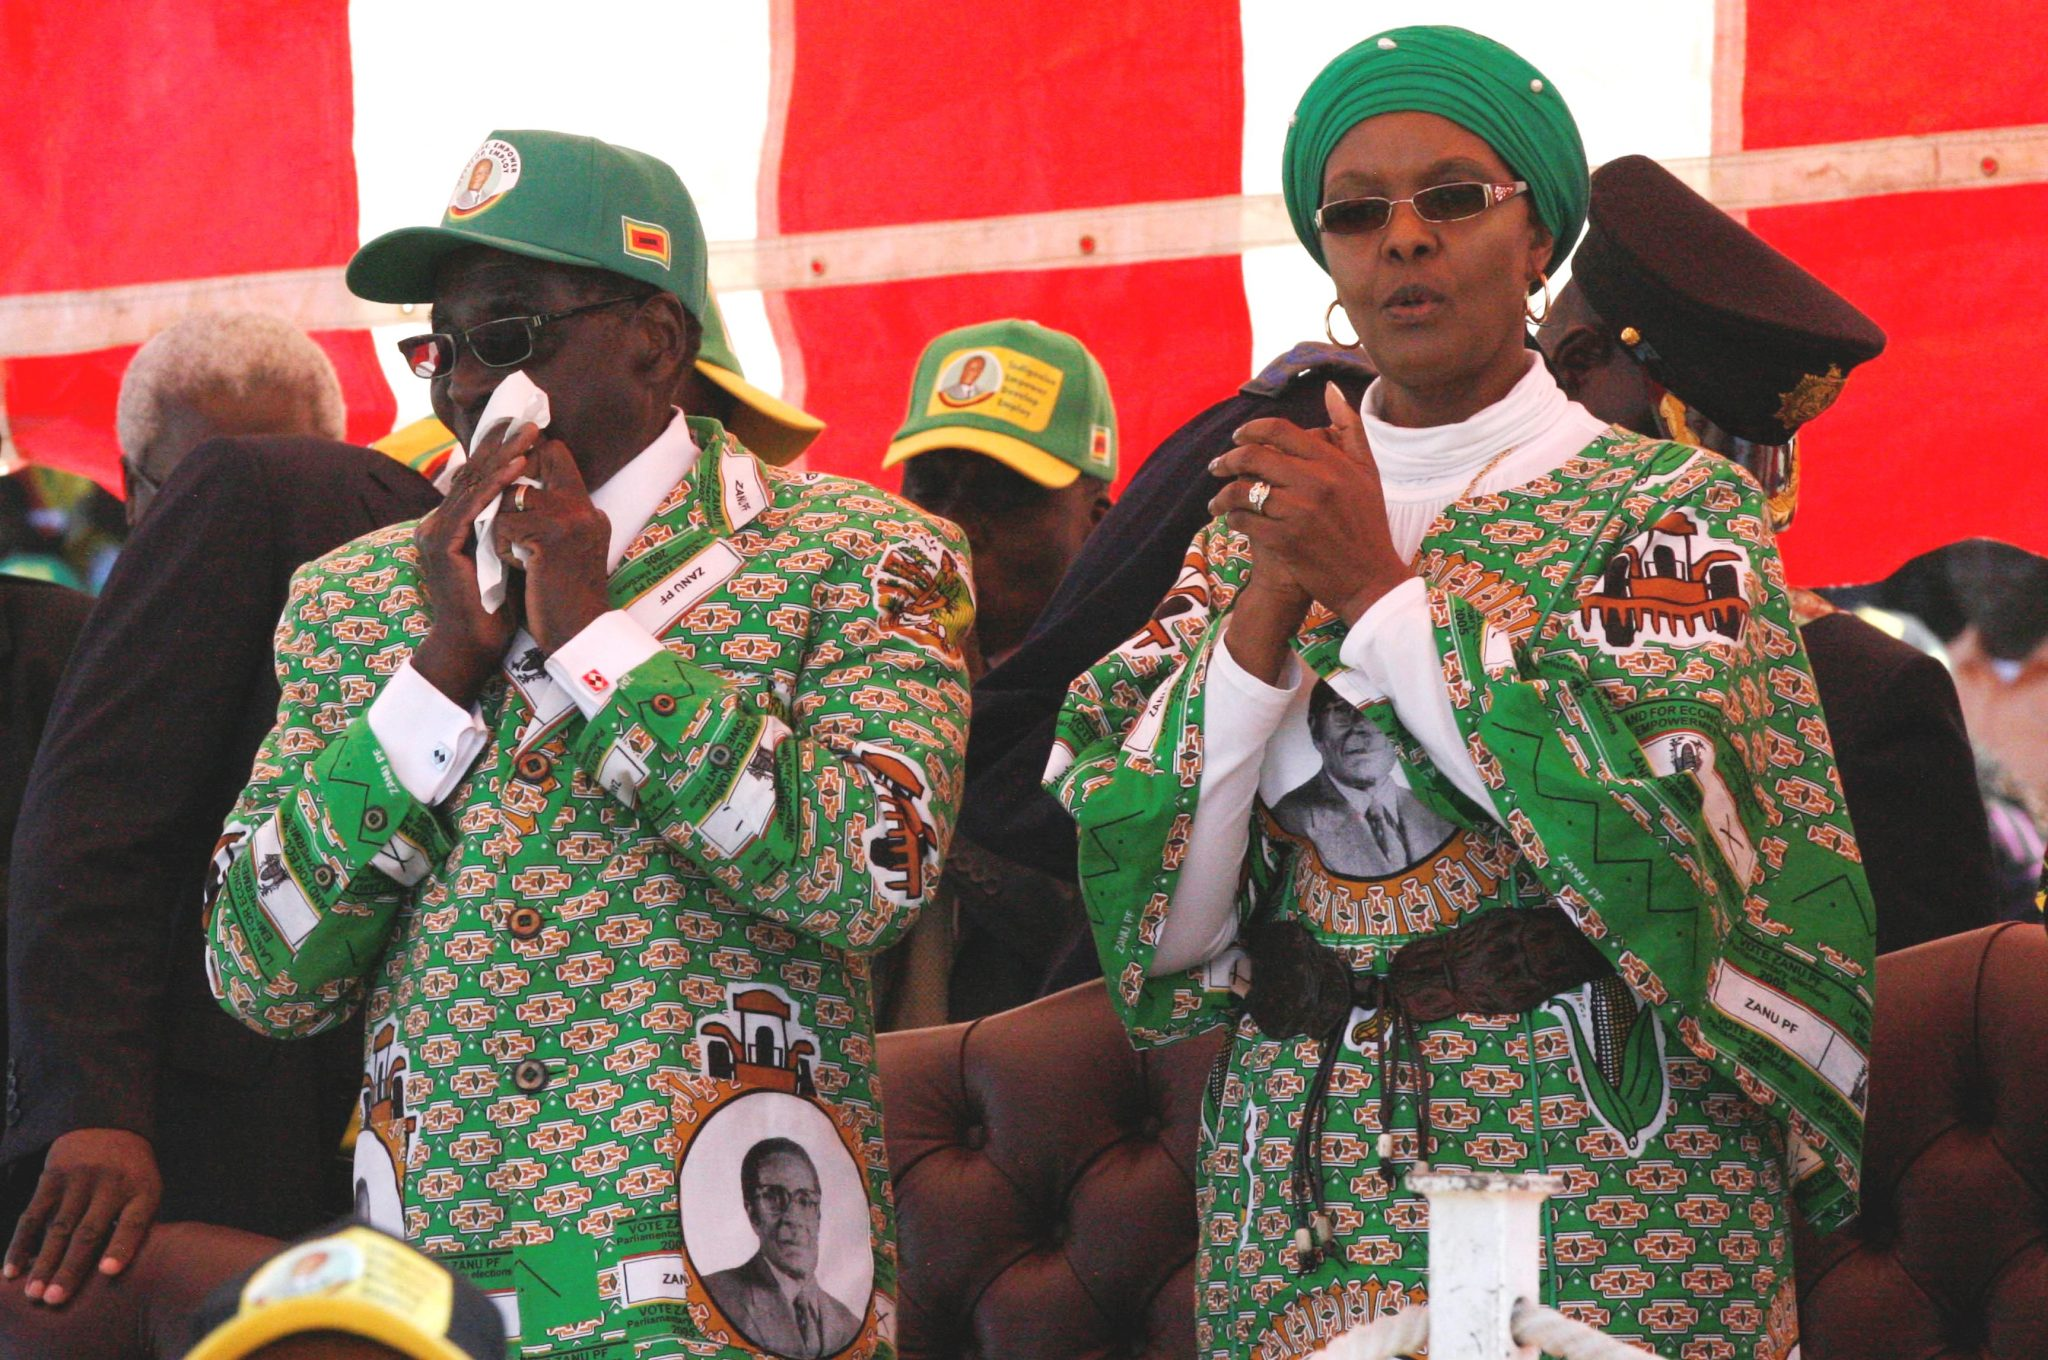 Zimbabwe first lady makes first public appearance